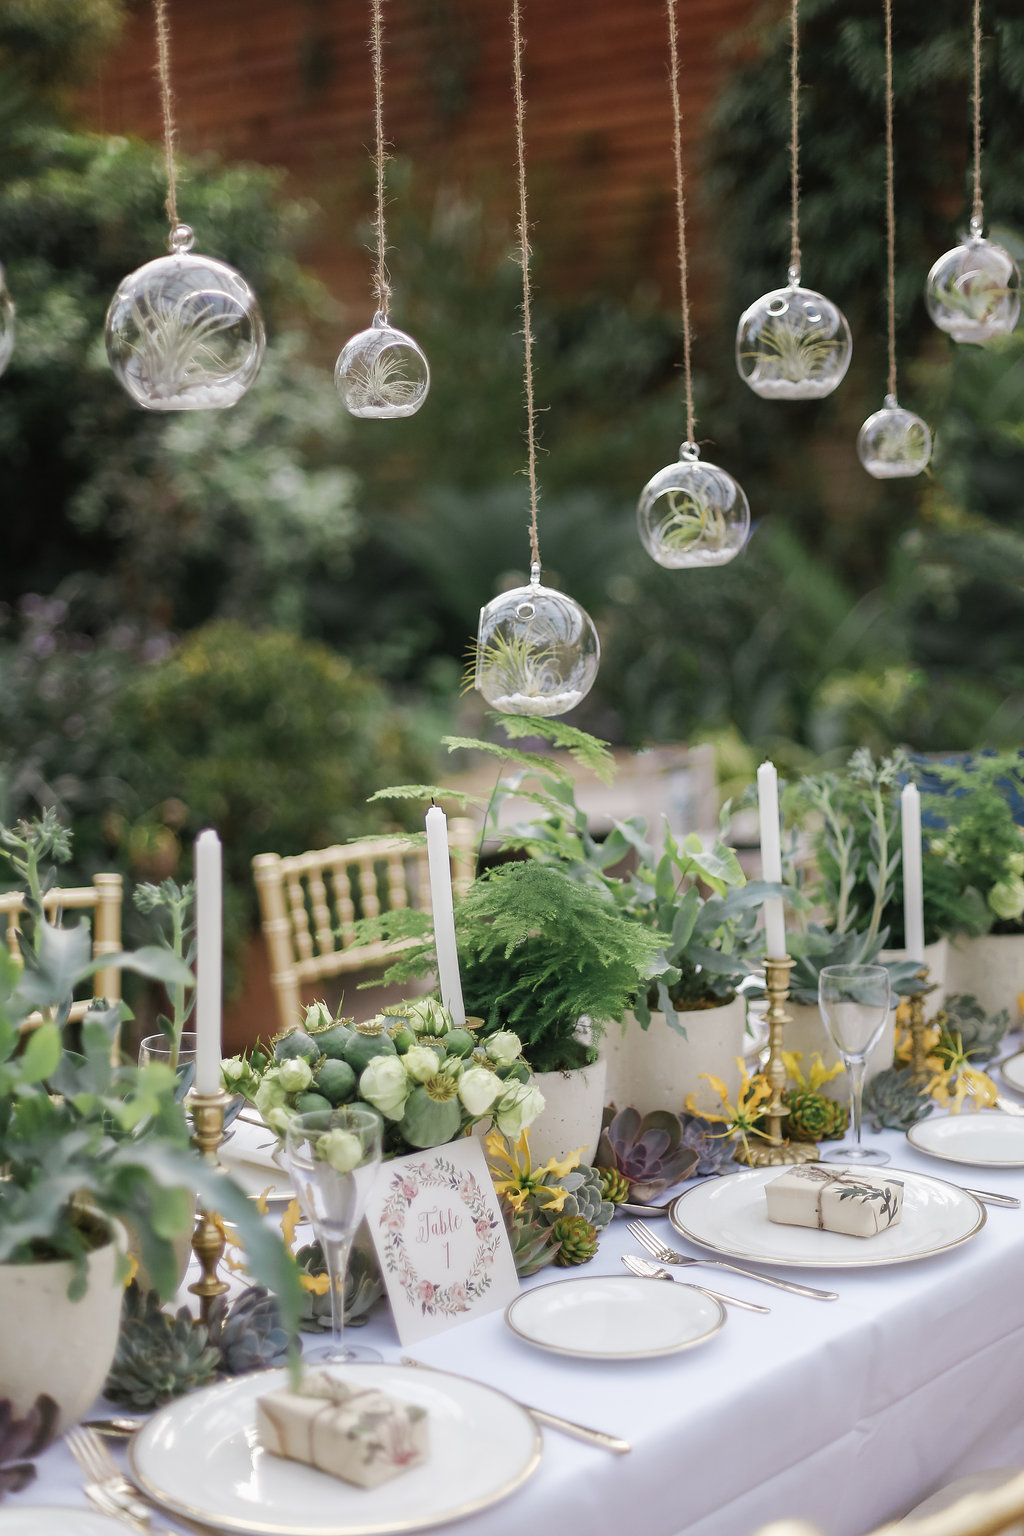 18 Rustic Greenery Wedding Table Decorations You Will Love ...